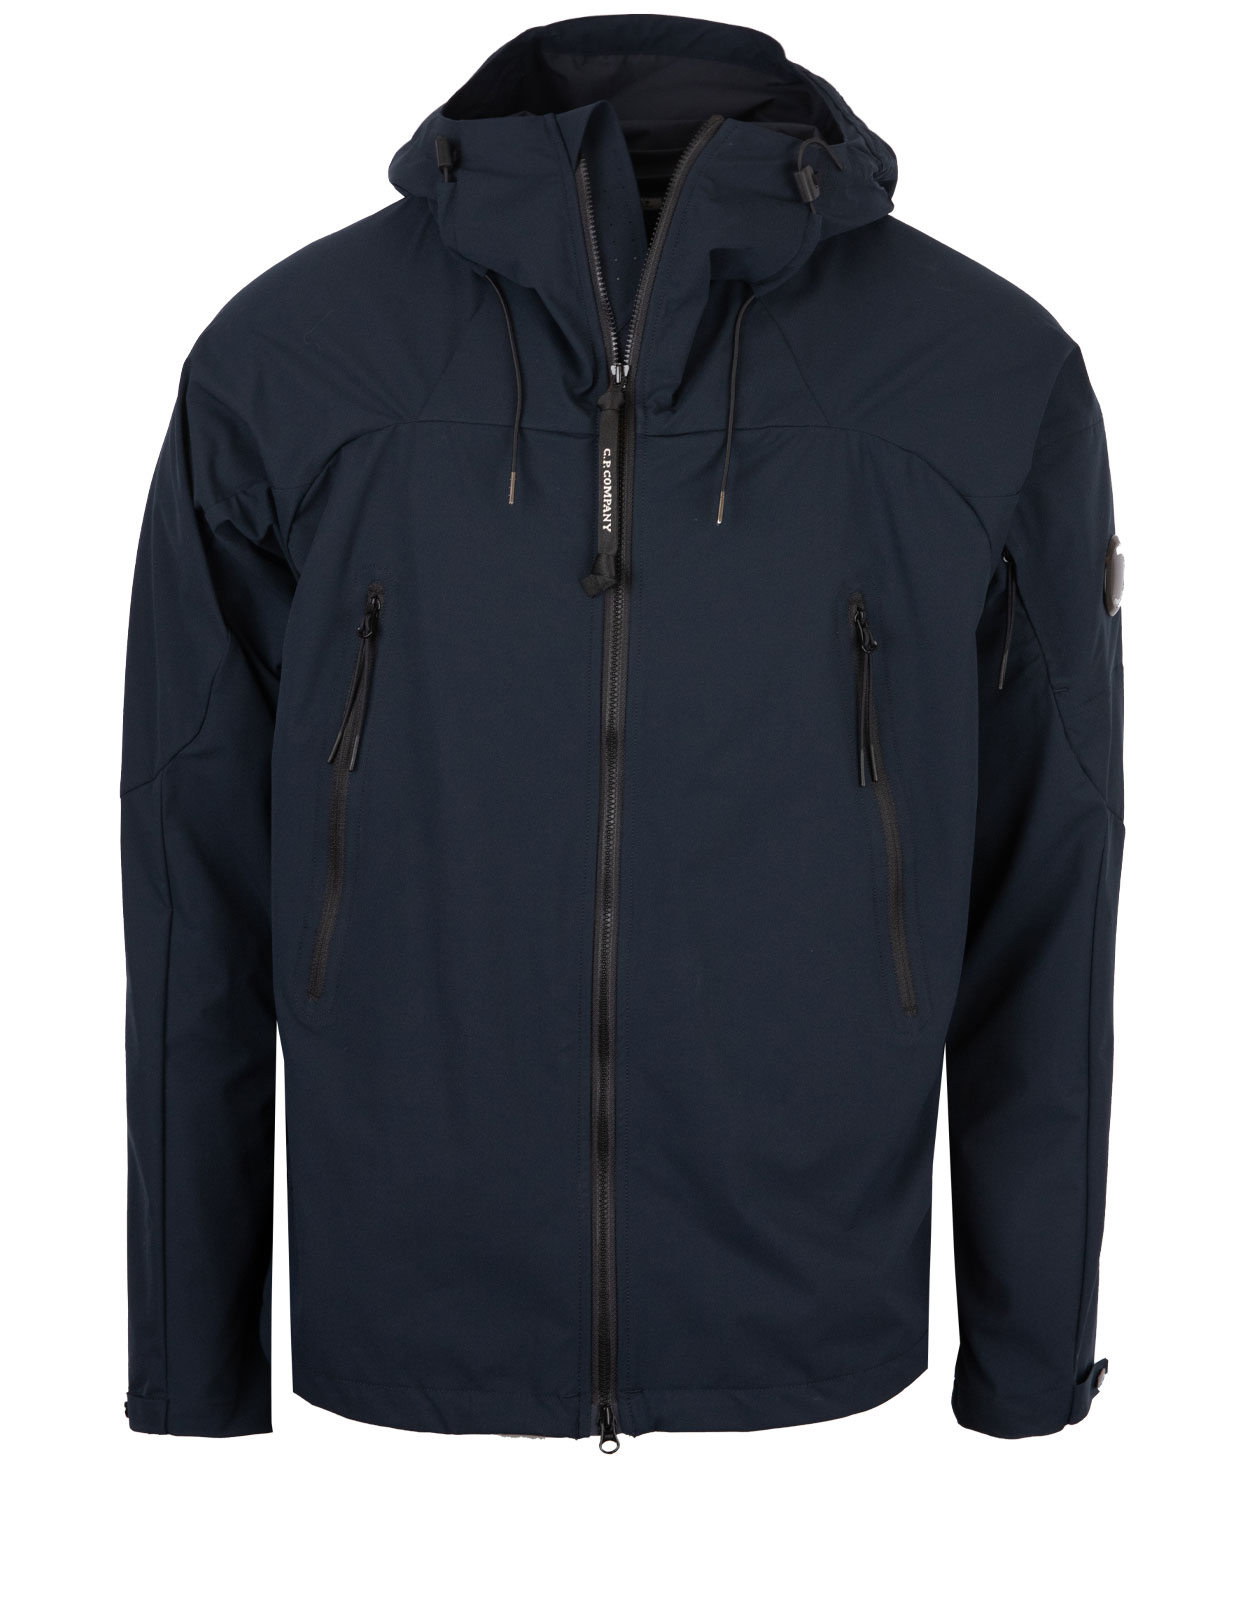 Pro-Tek Medium Jacket Total Eclipse